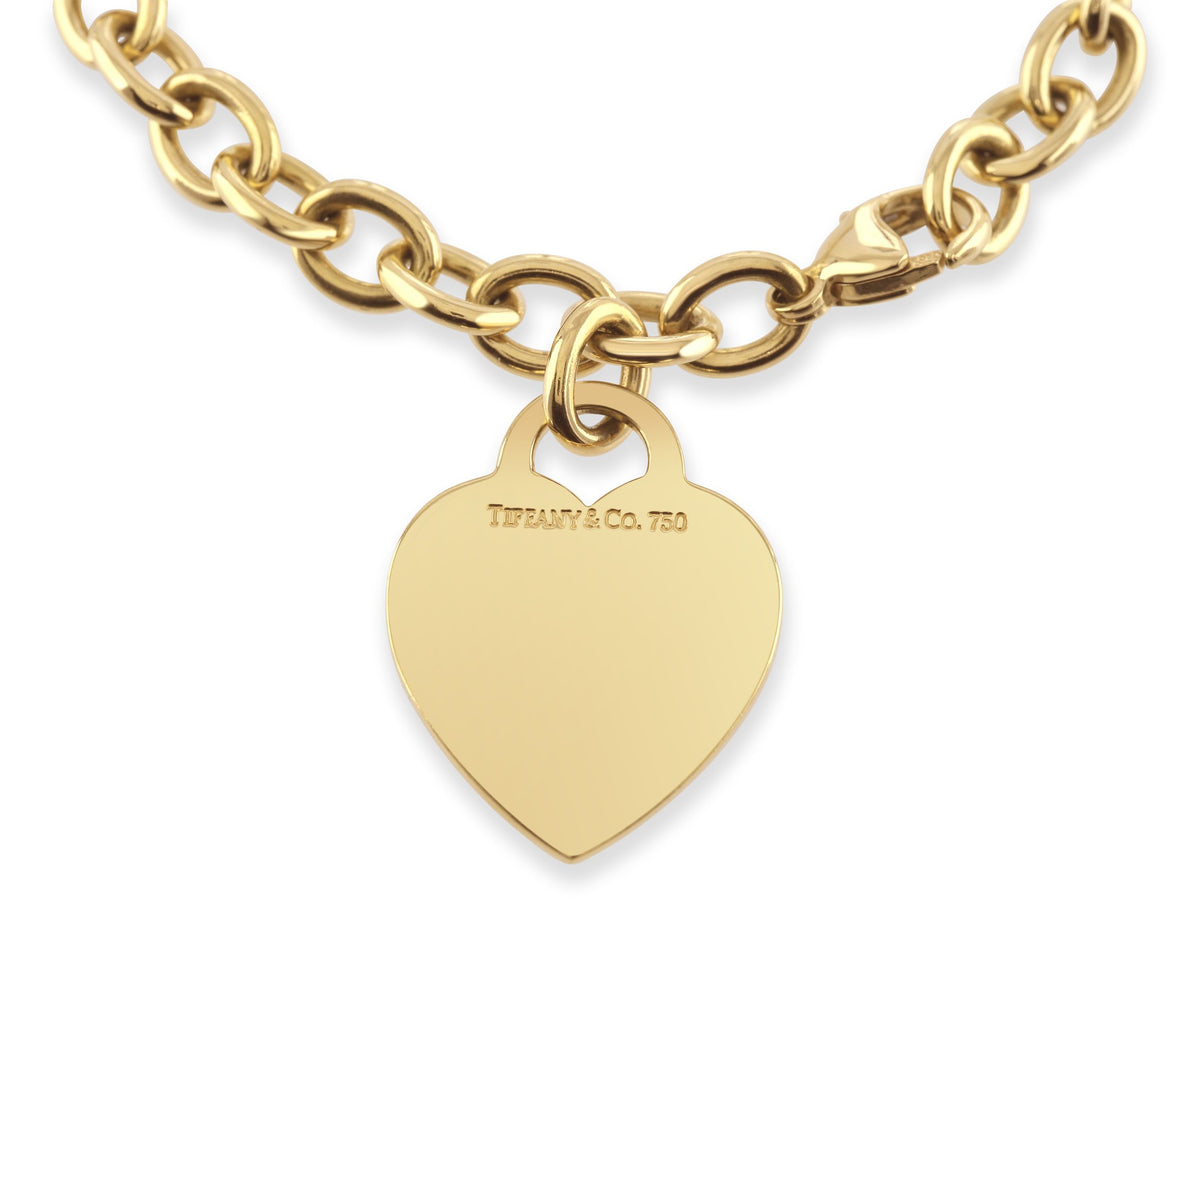 Tiffany & Co. 18ct Yellow Gold Heart Bracelet